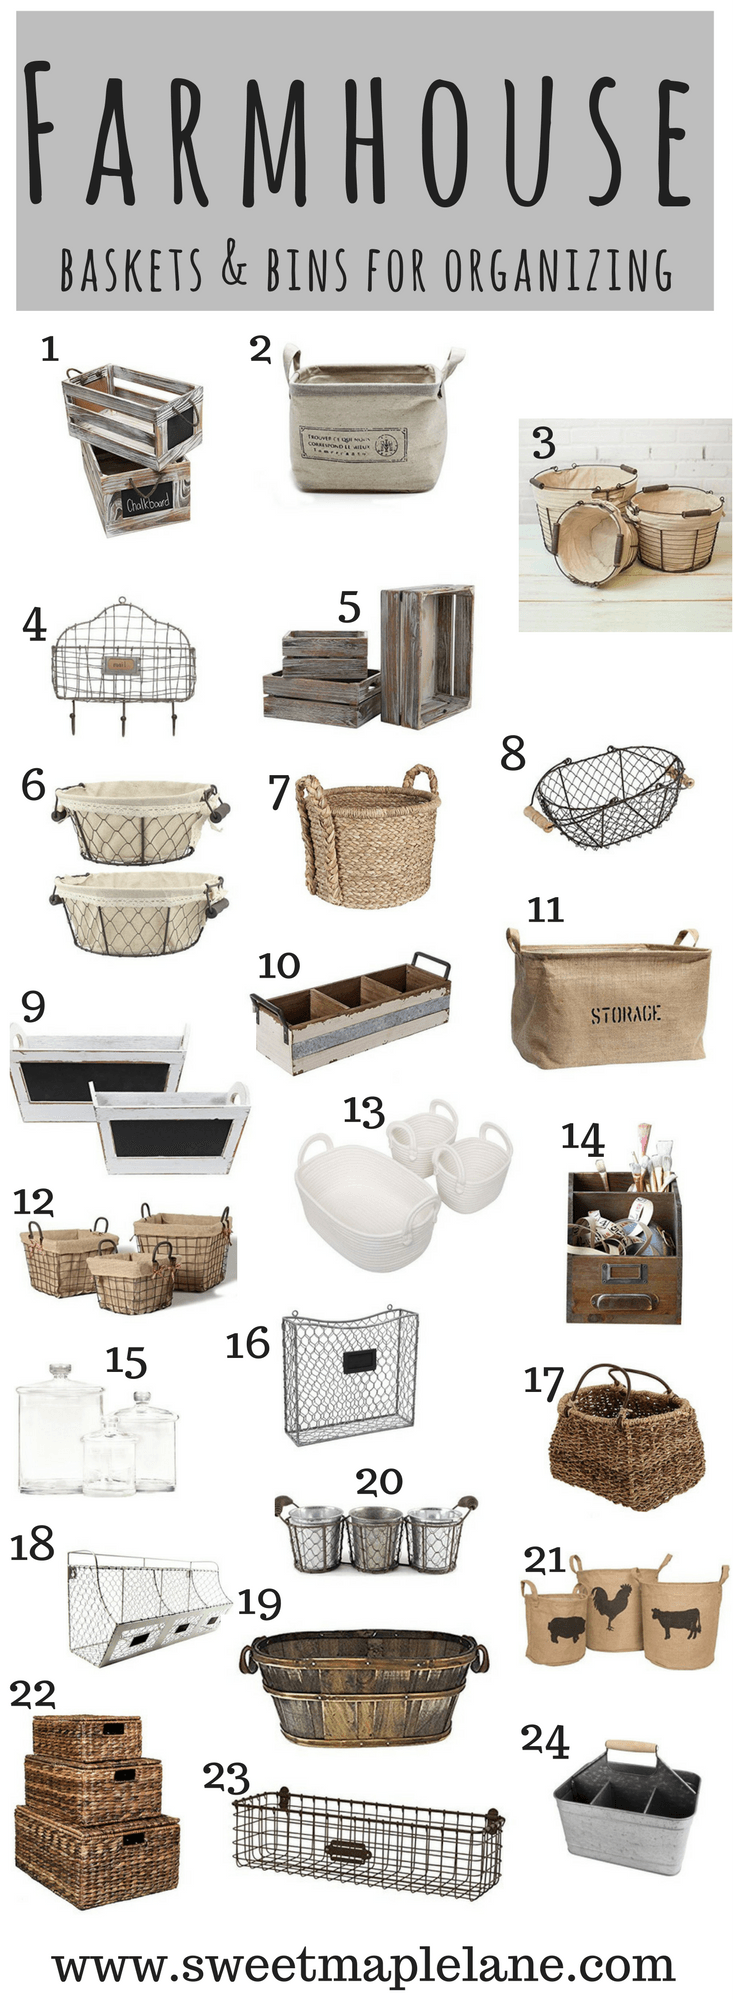 Rustic Farmhouse Baskets and Bins for Organizing | Basket ...